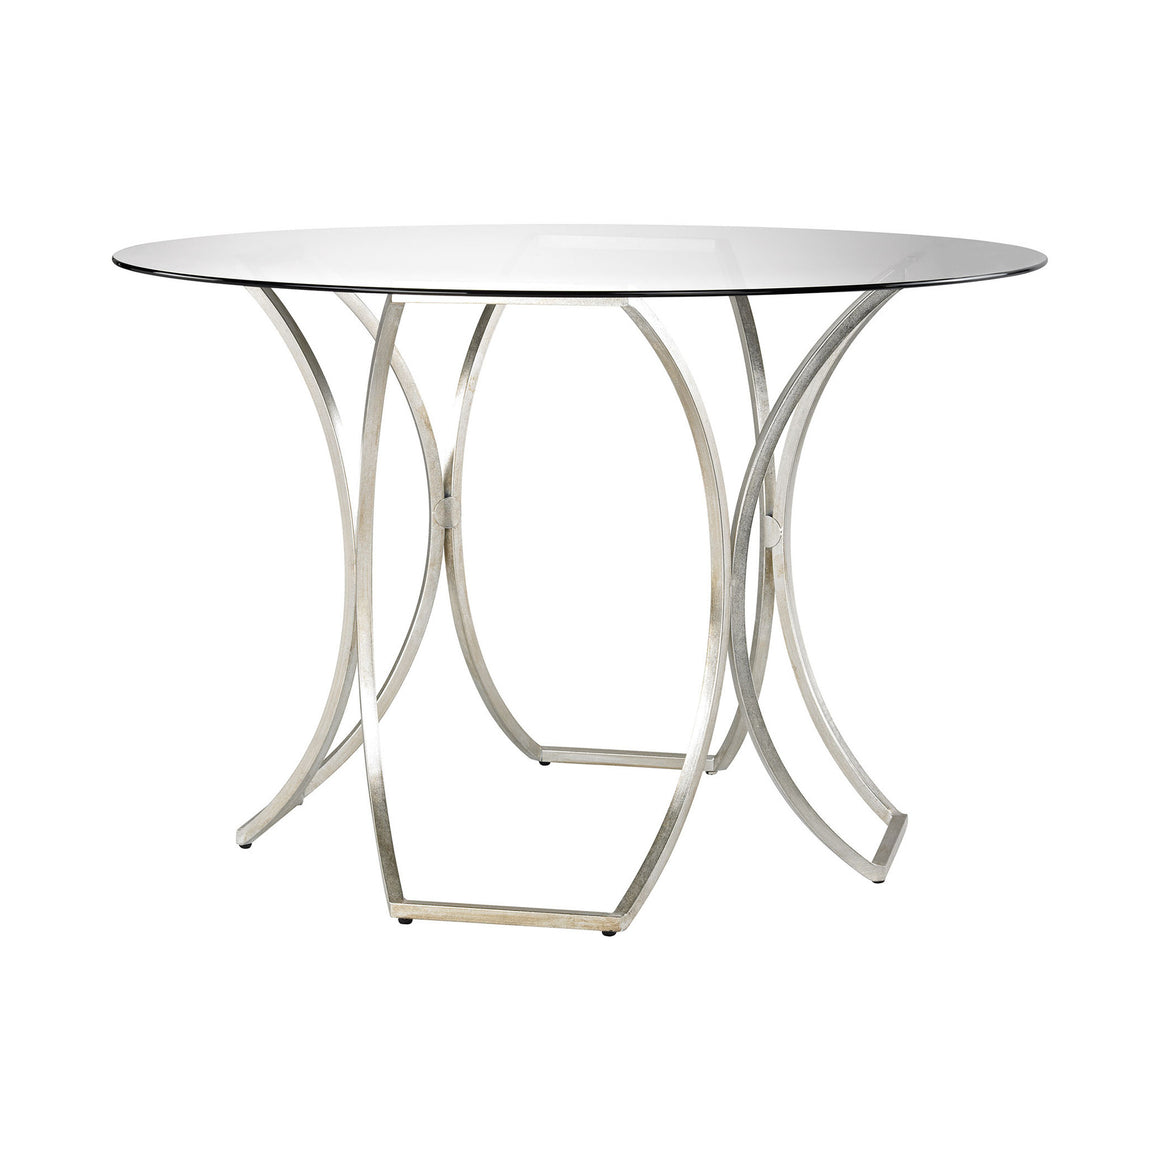 Clooney Entry Table 1114-223 by Dimond Home